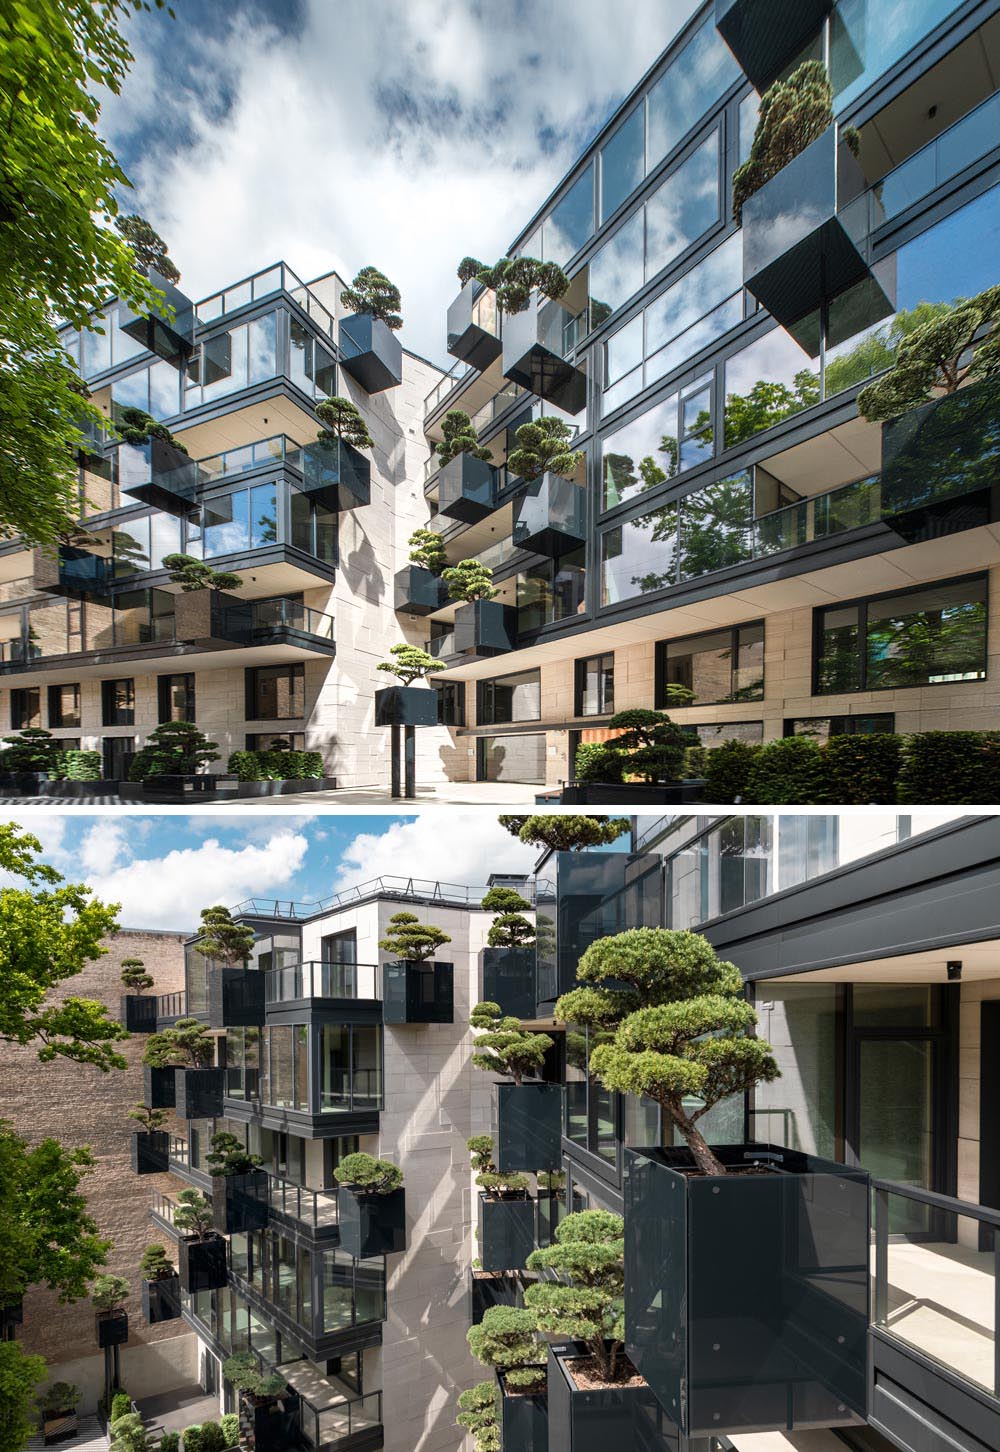 As part of the design of the new exterior of this apartment building, 'flying' conifers and bonsai trees were placed in cantilevered planters.